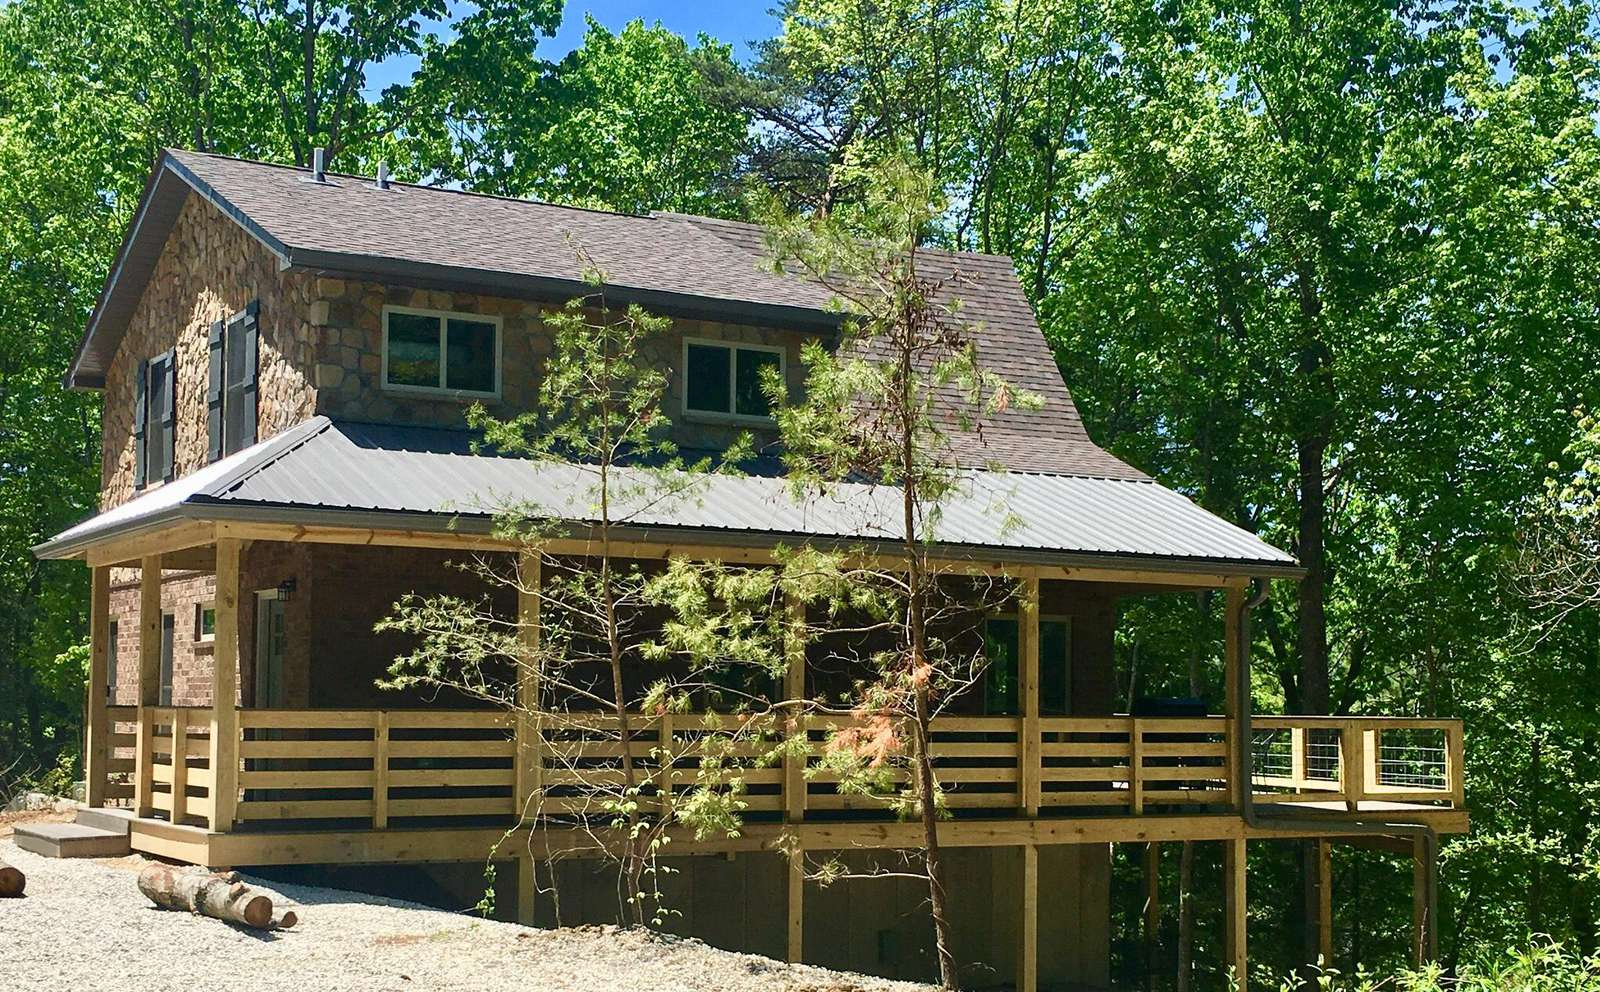 Cabin Rentals in Red River Gorge & Natural Bridge | Kentucky